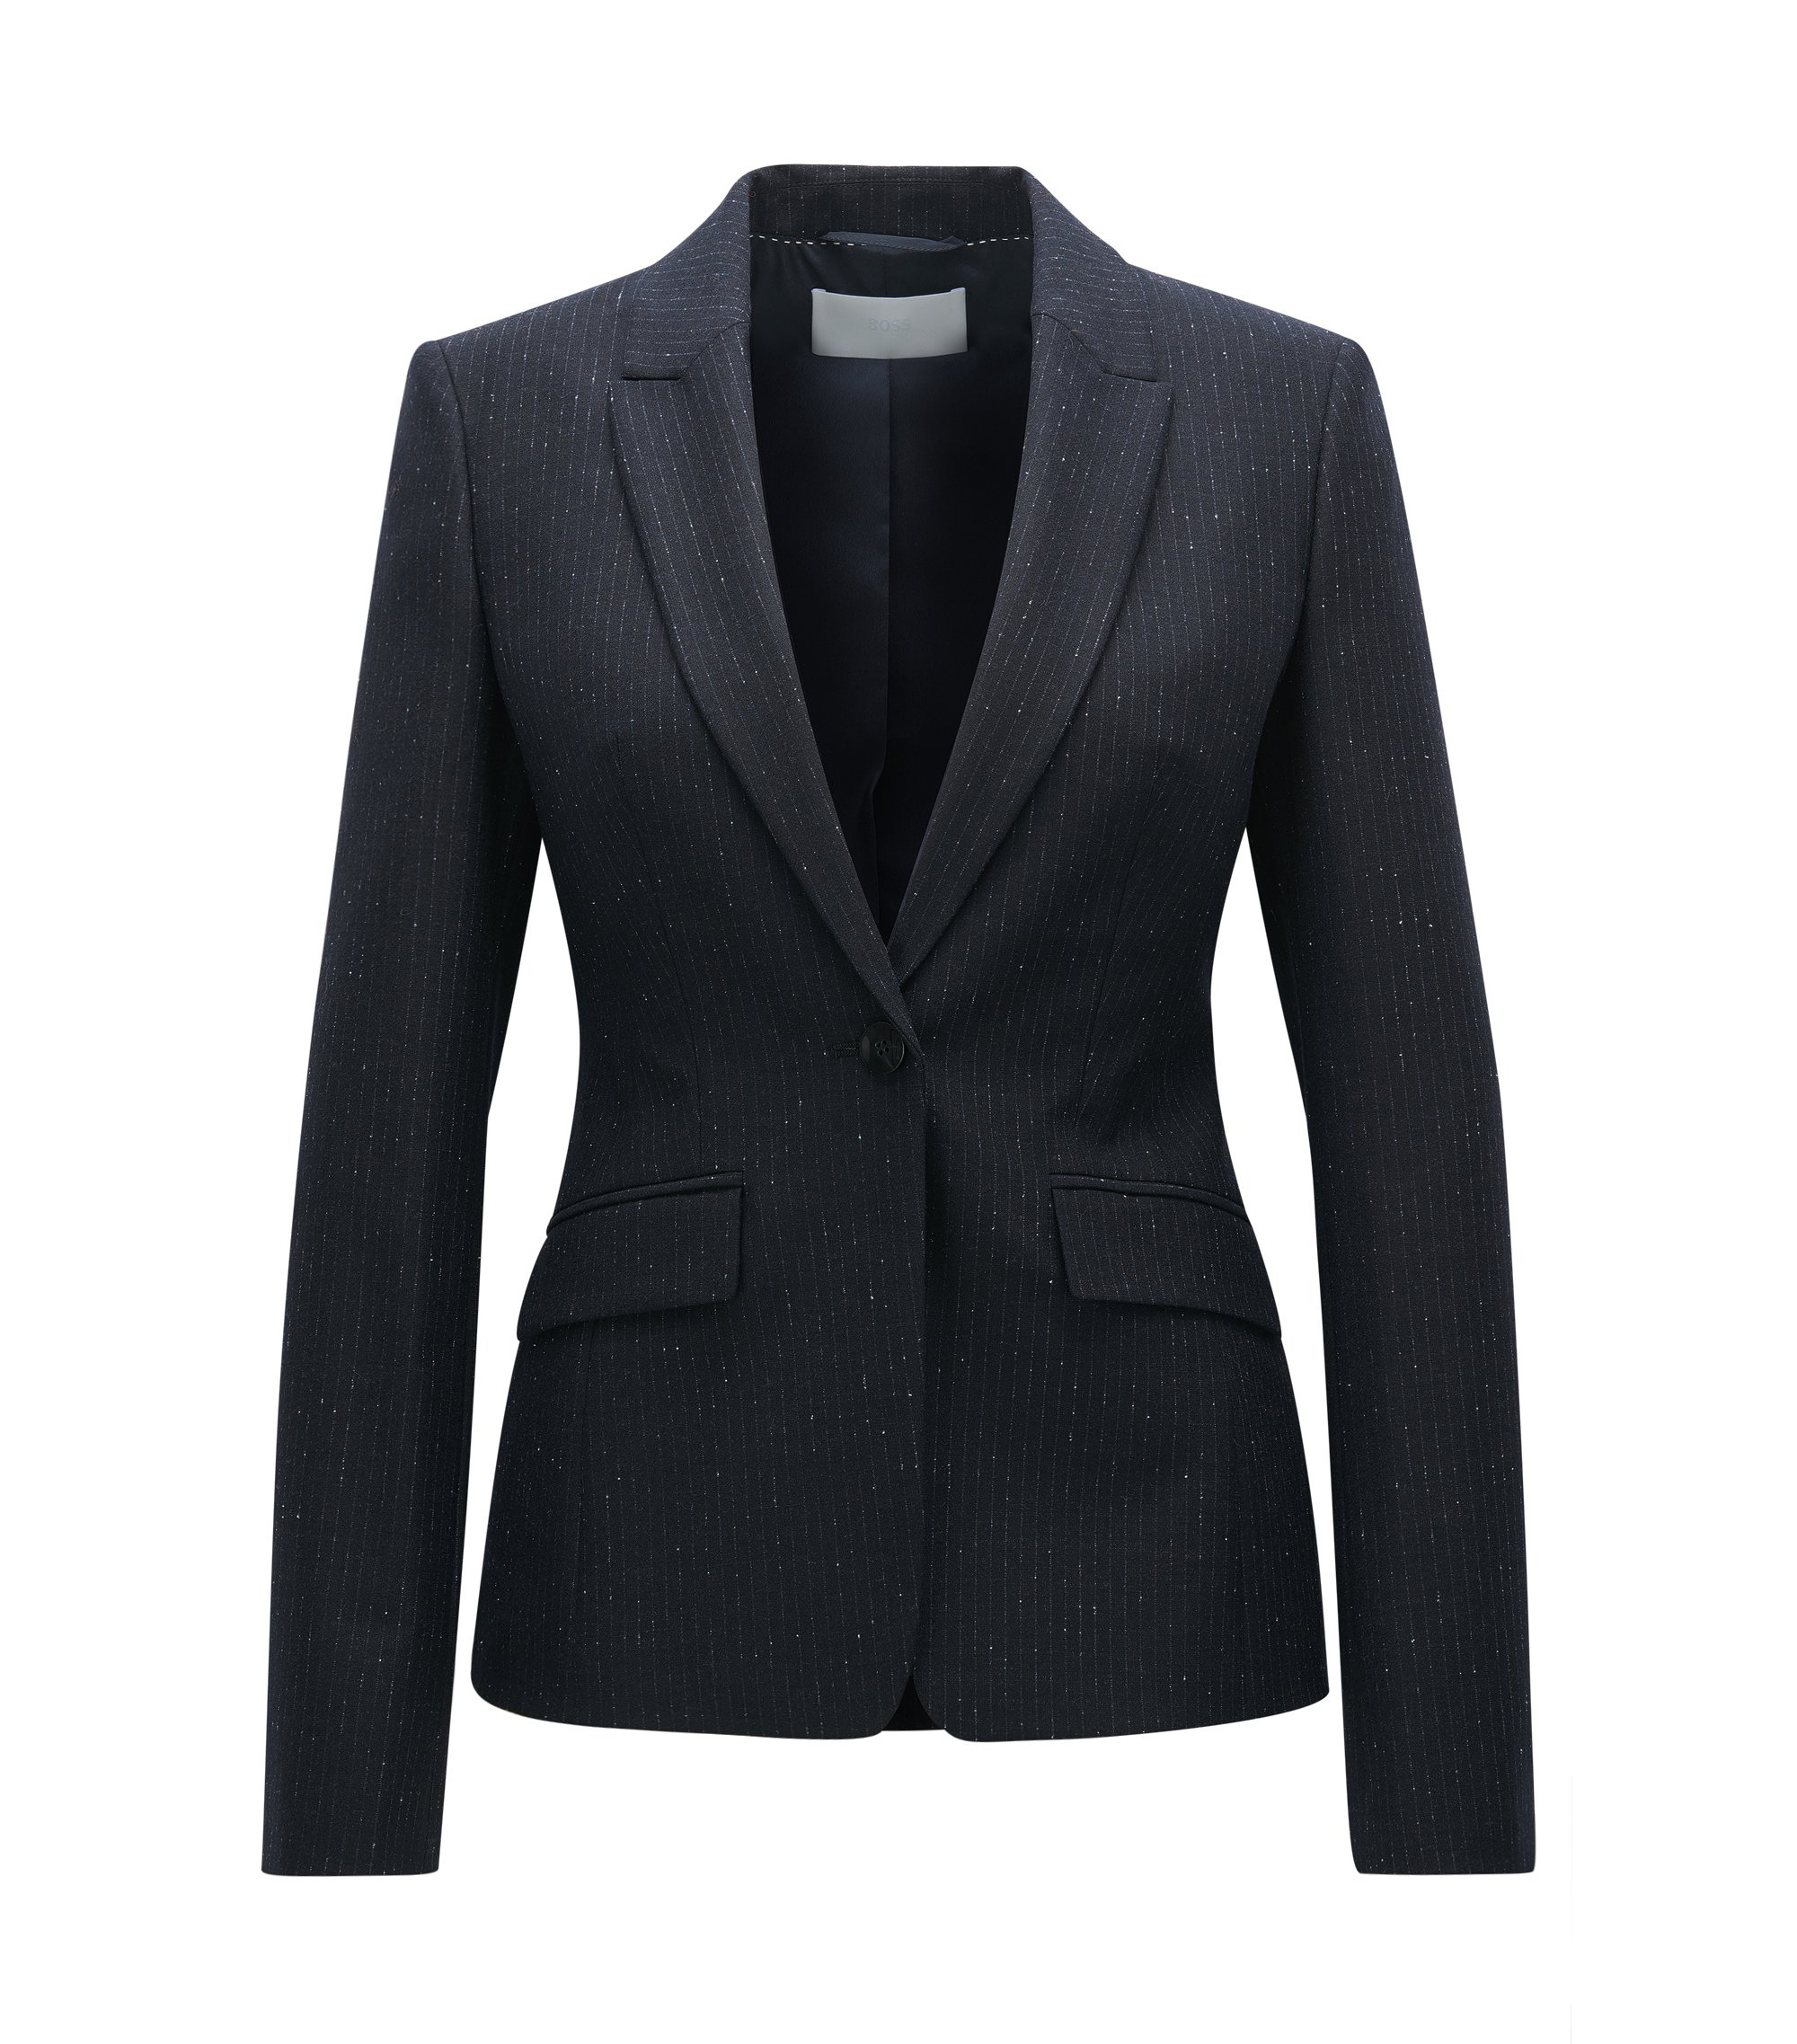 Regular fit virgin wool-blend jacket, Patterned